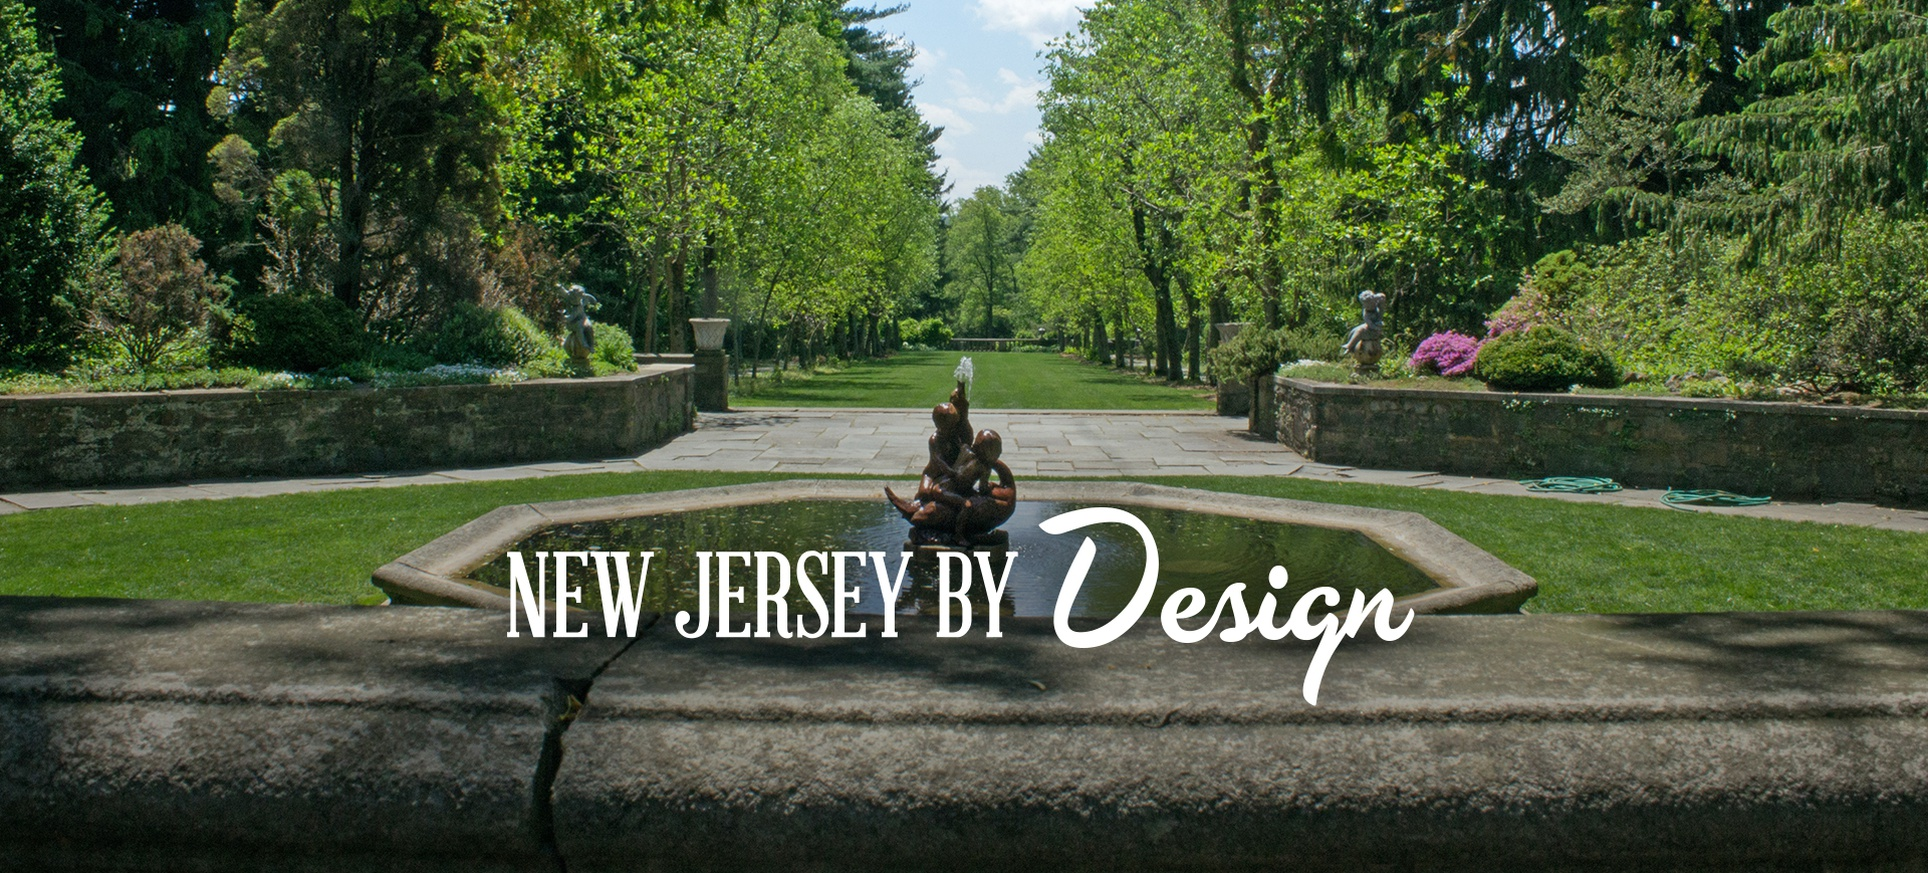 Home | Journey Through Jersey